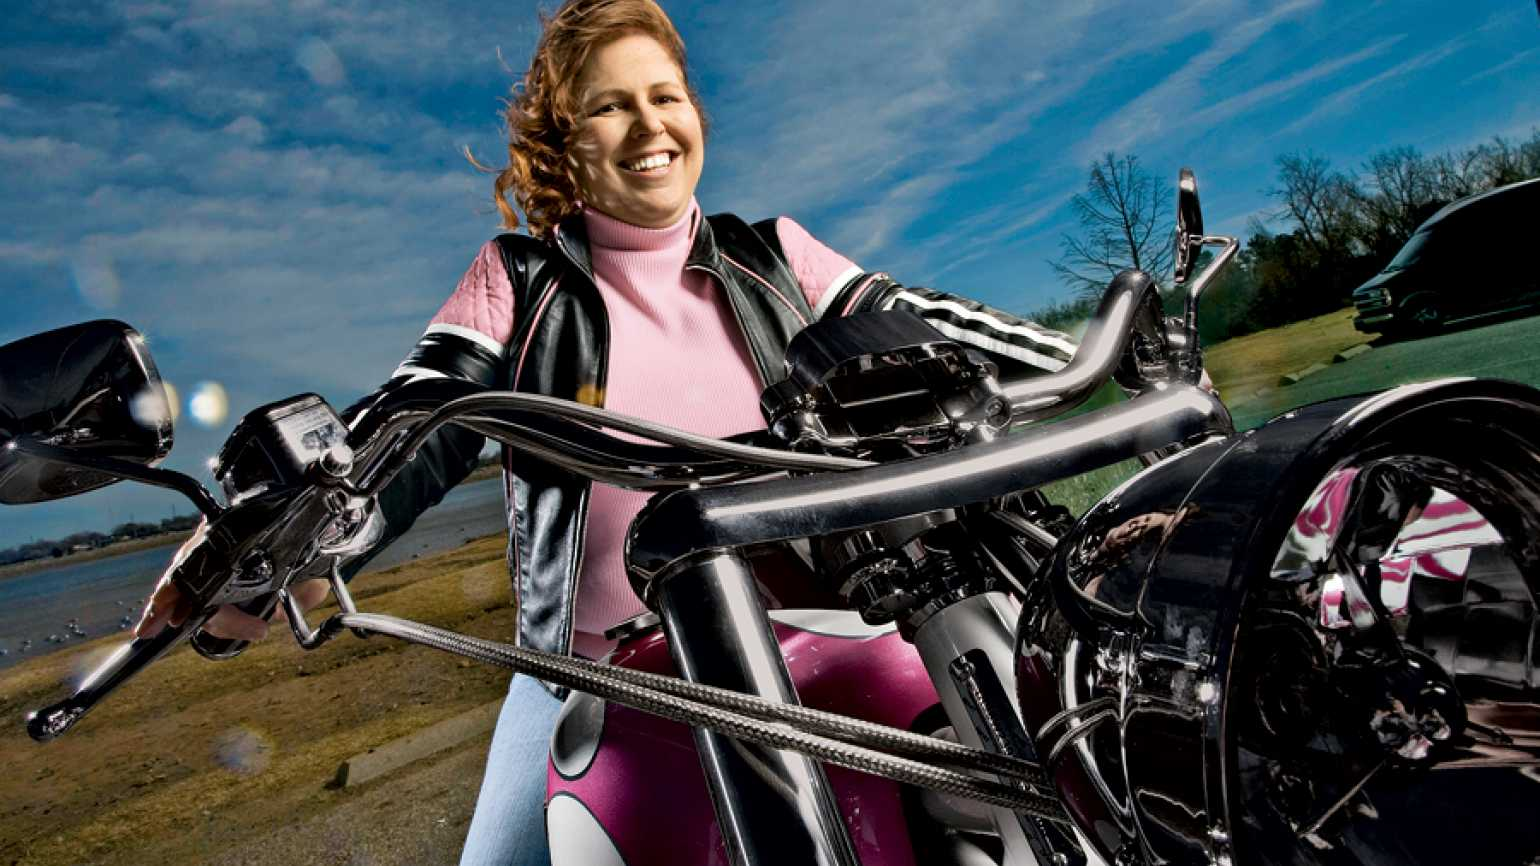 Gayla Ross (here on her Ridley) is more adventurous now.